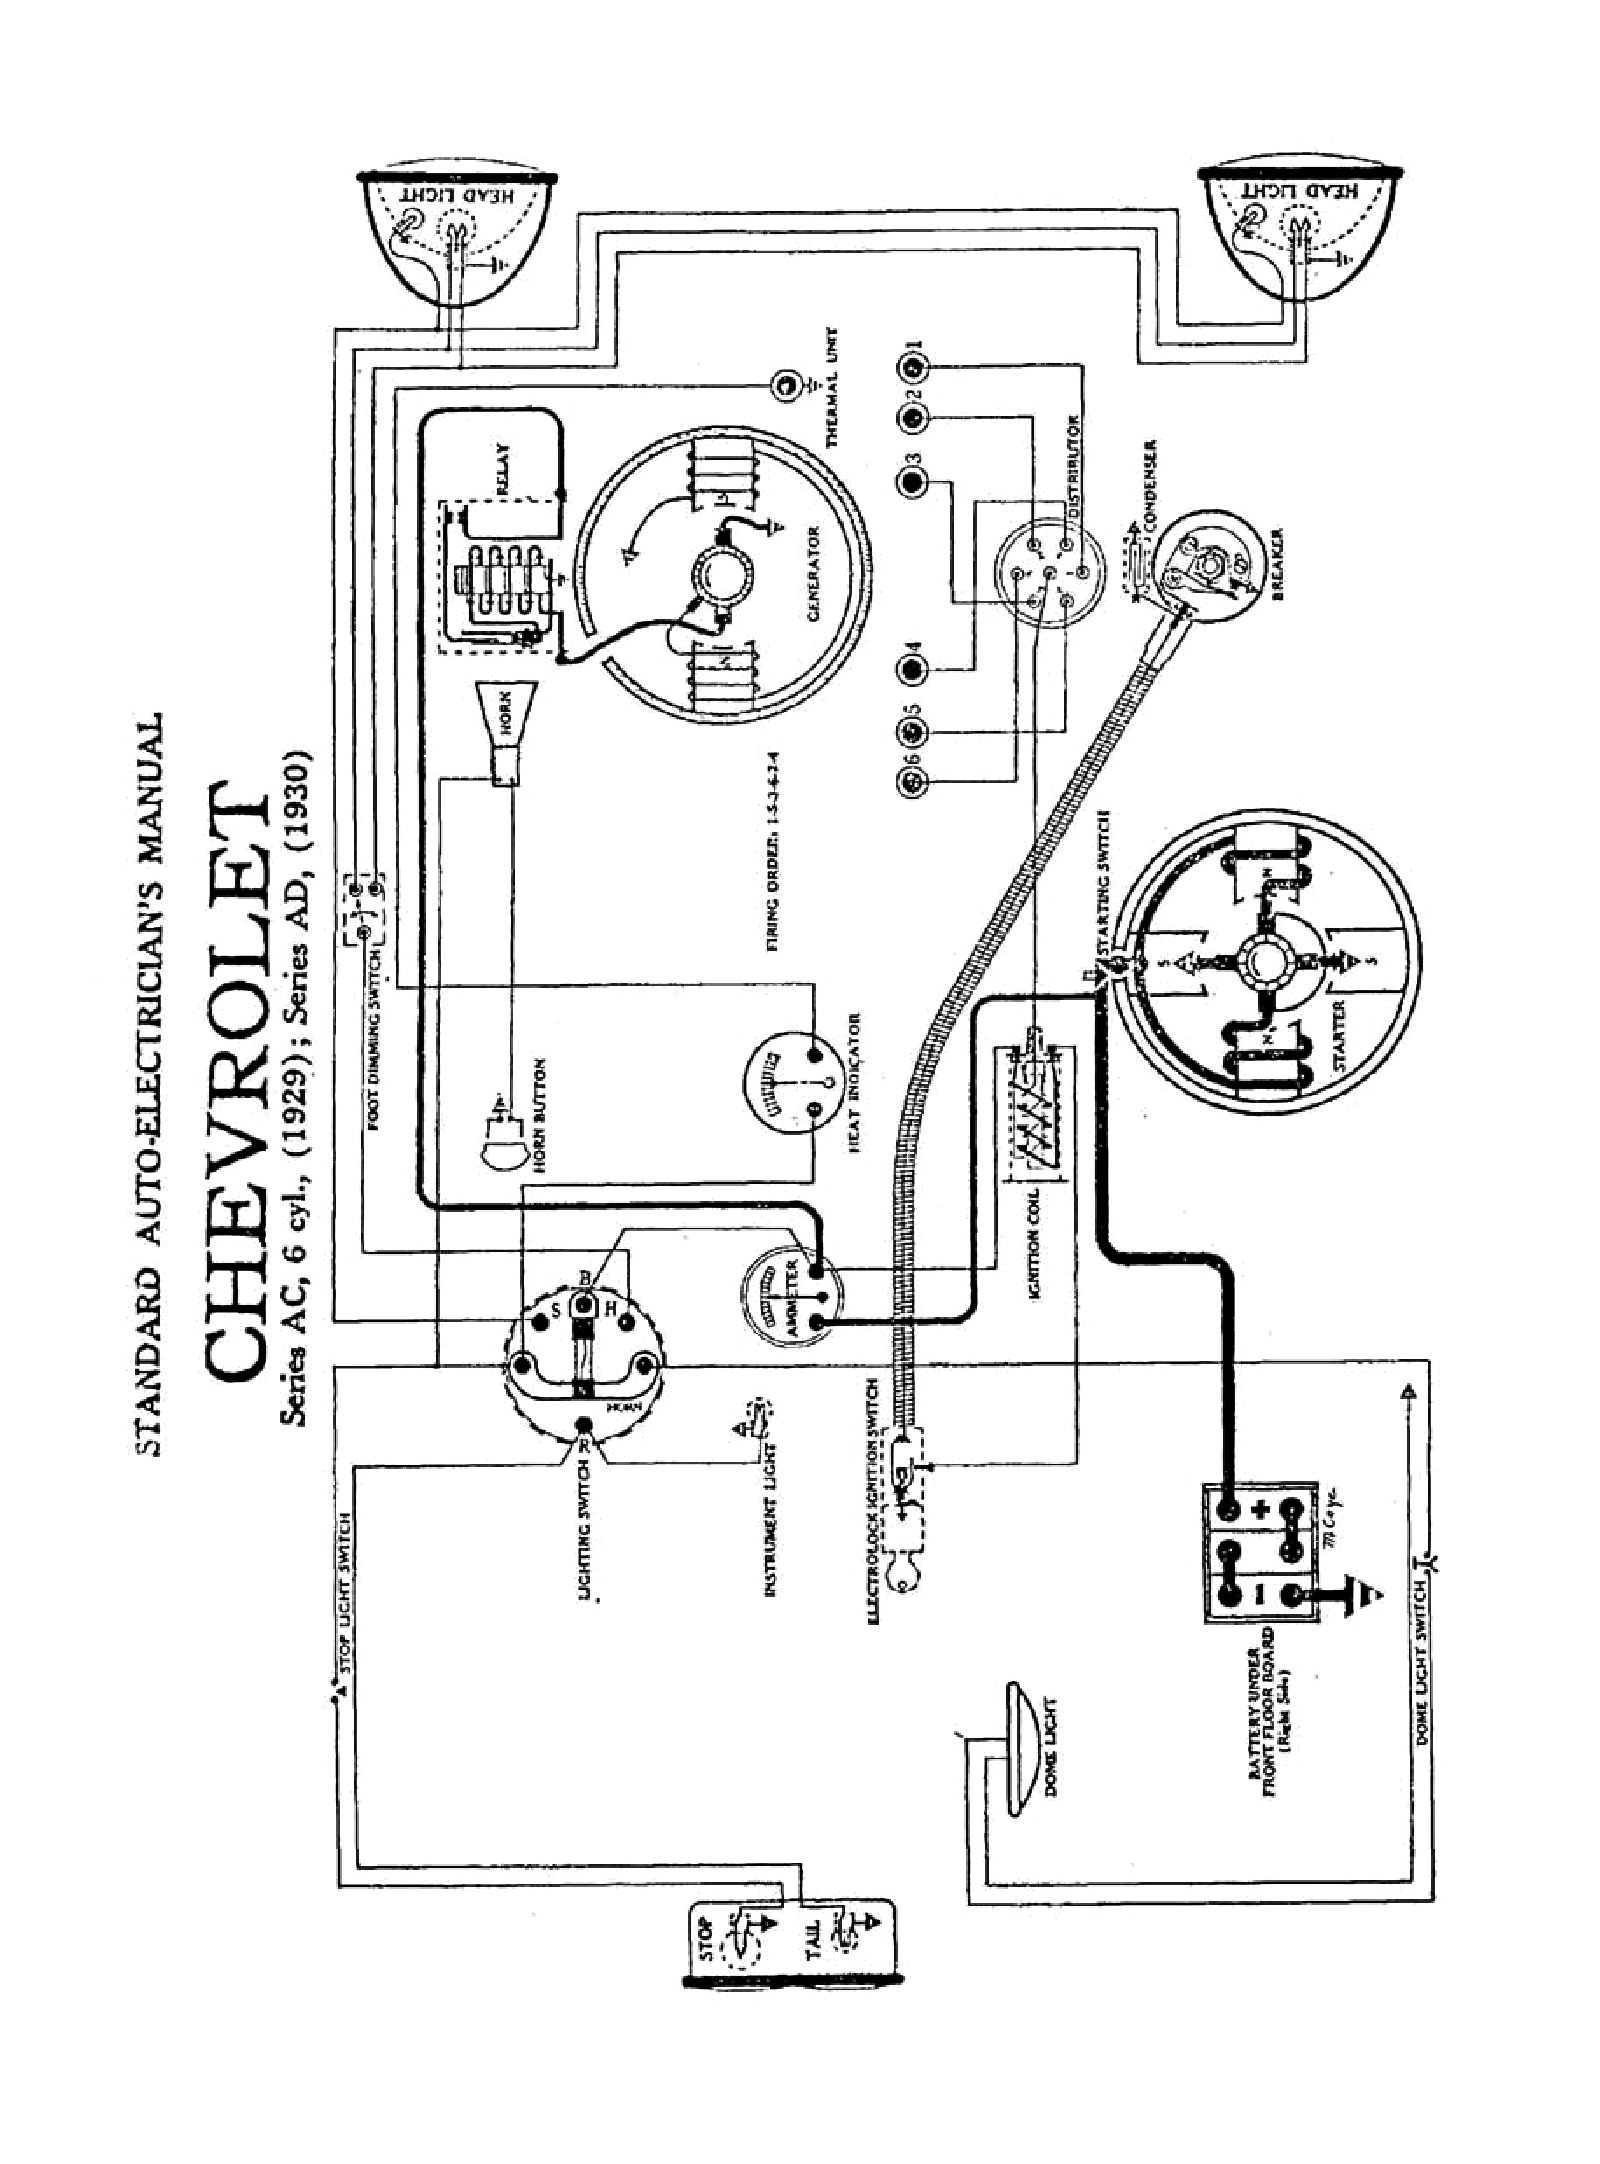 hight resolution of 1951 cadillac wiring diagram 1 10 nuerasolar co u2022 2003 cadillac wiring diagrams 1951 8n wiring system diagram wiring diagram rh a5 fehmarnbeltachse de